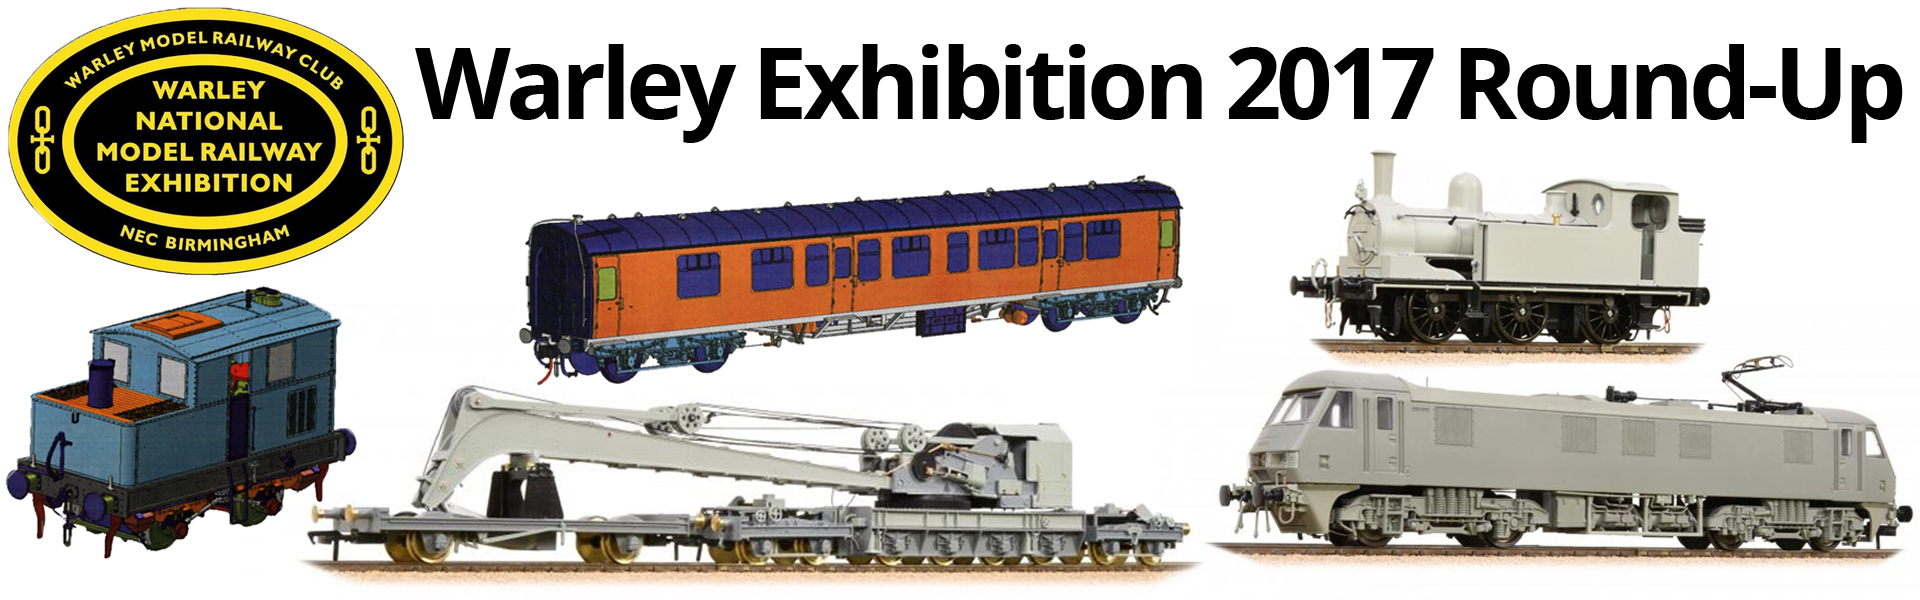 hattons co uk warley exhibition 2017 round upthis weekend, we attended the annual warley national model railway exhibition at the nec in birmingham there was all manner of new products to explore and